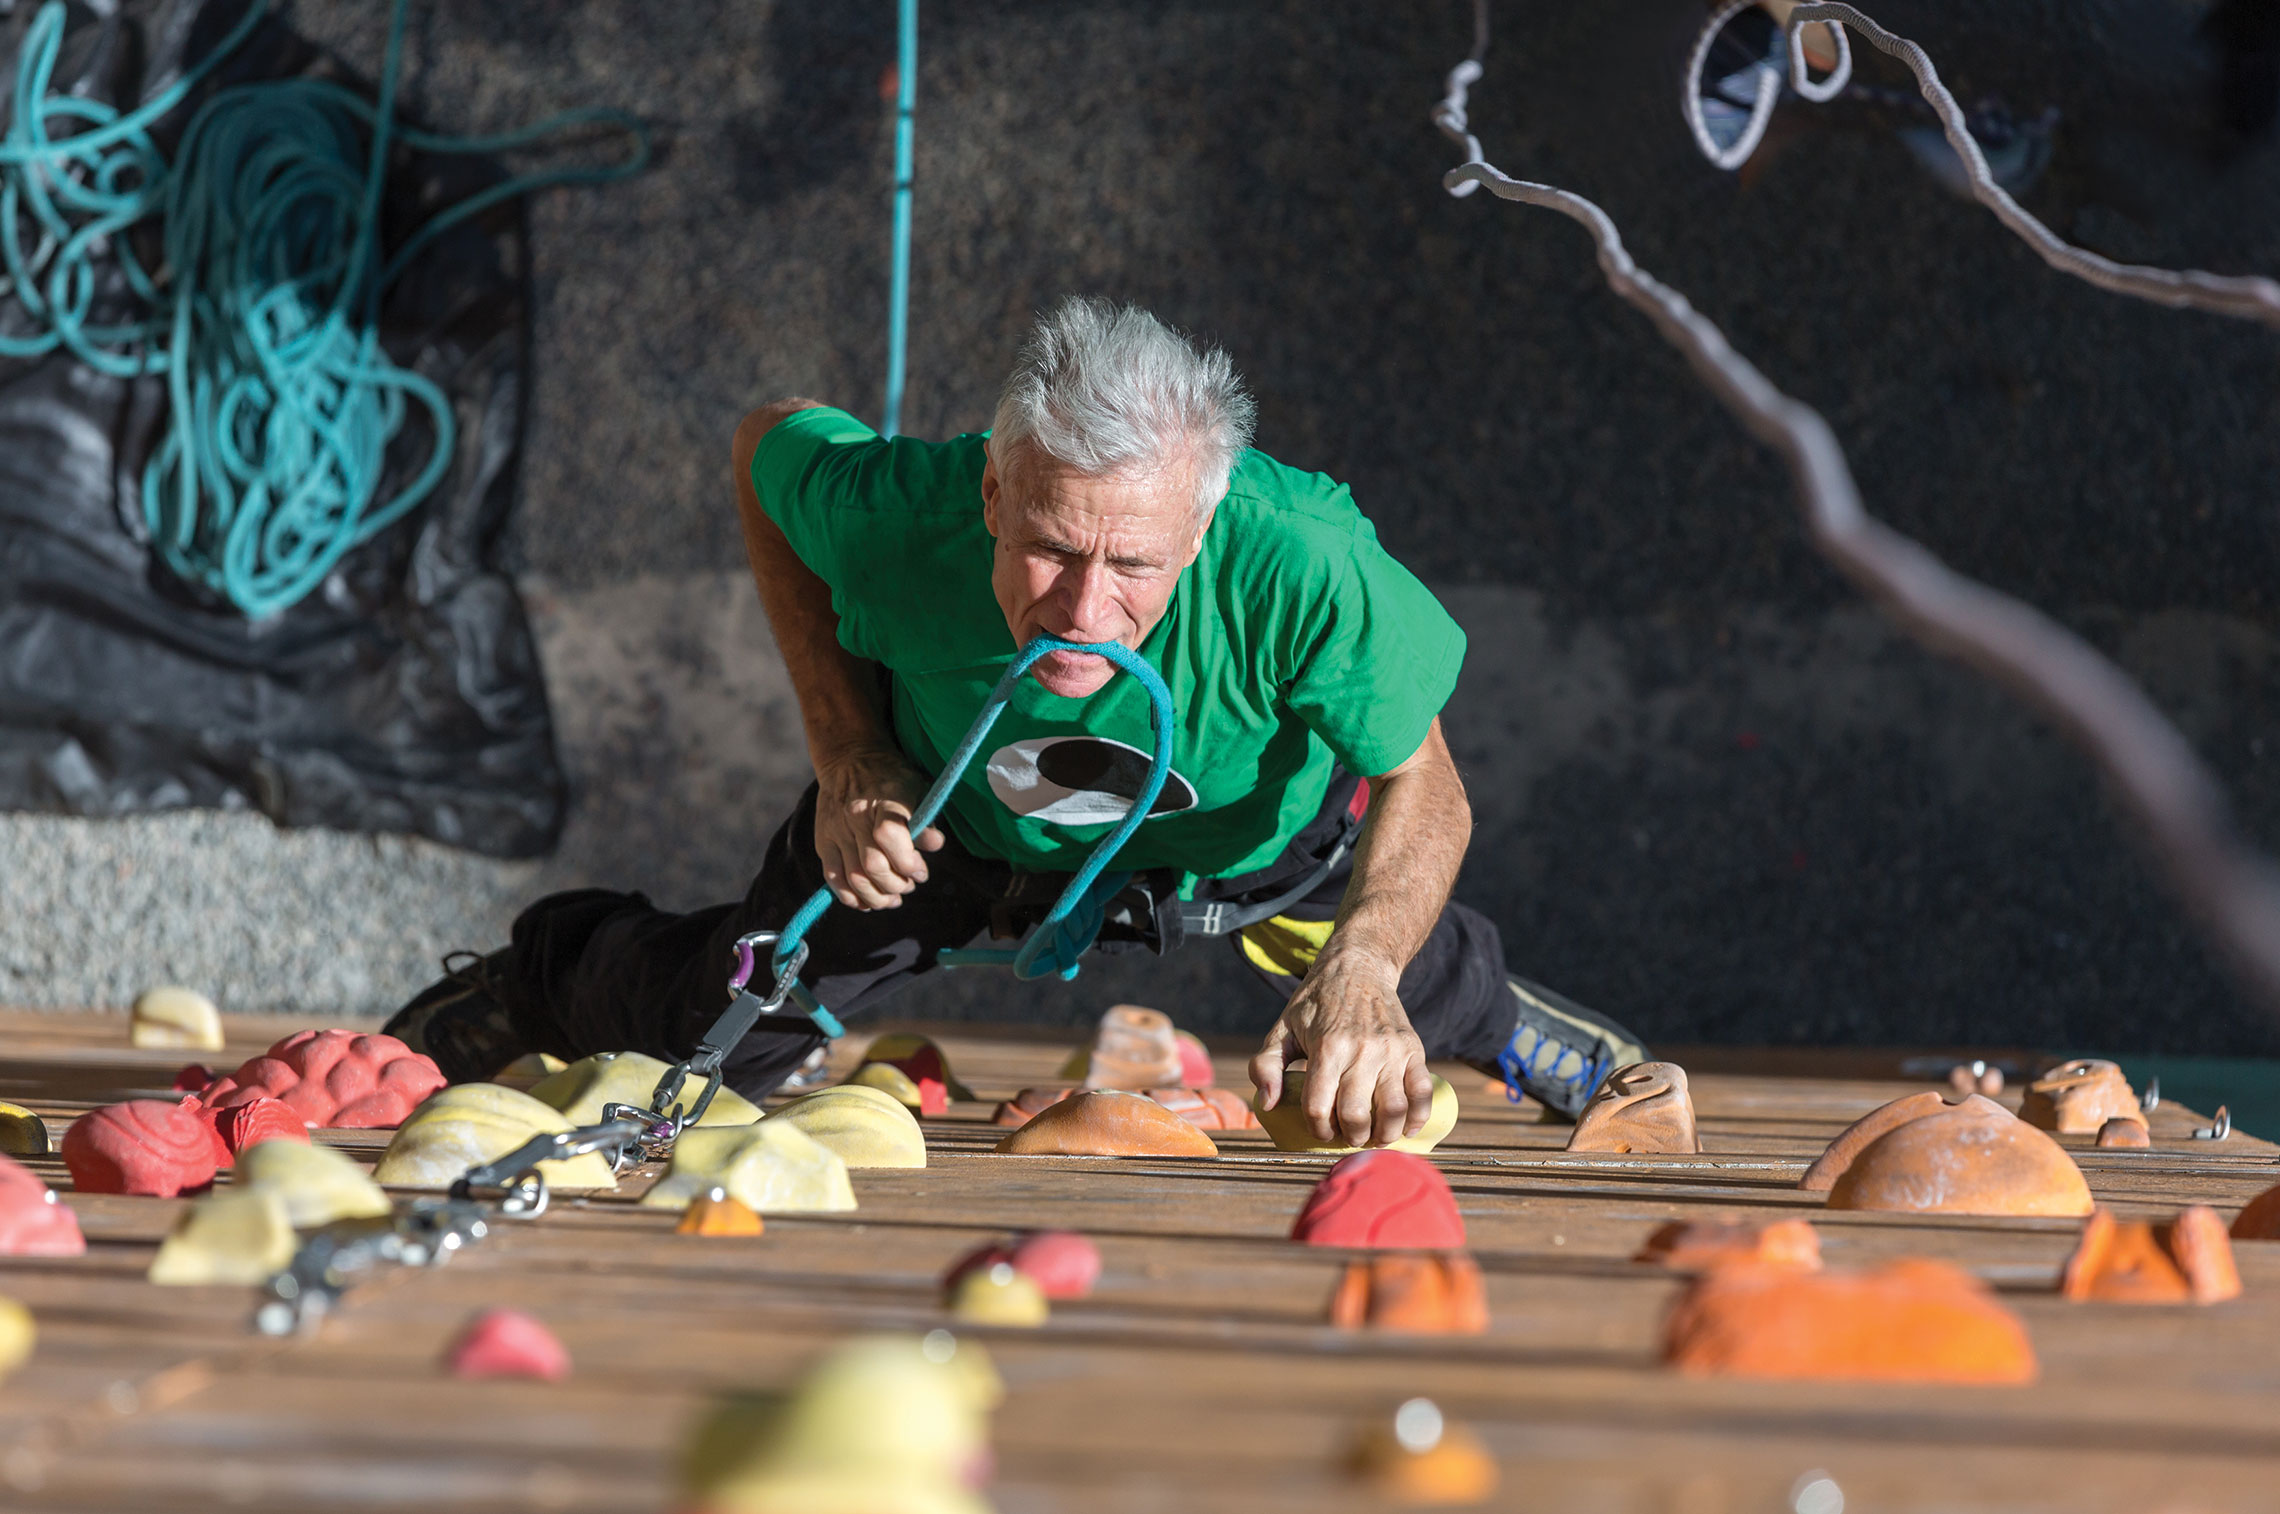 Find Your Higher Ground with Indoor Rock Climbing